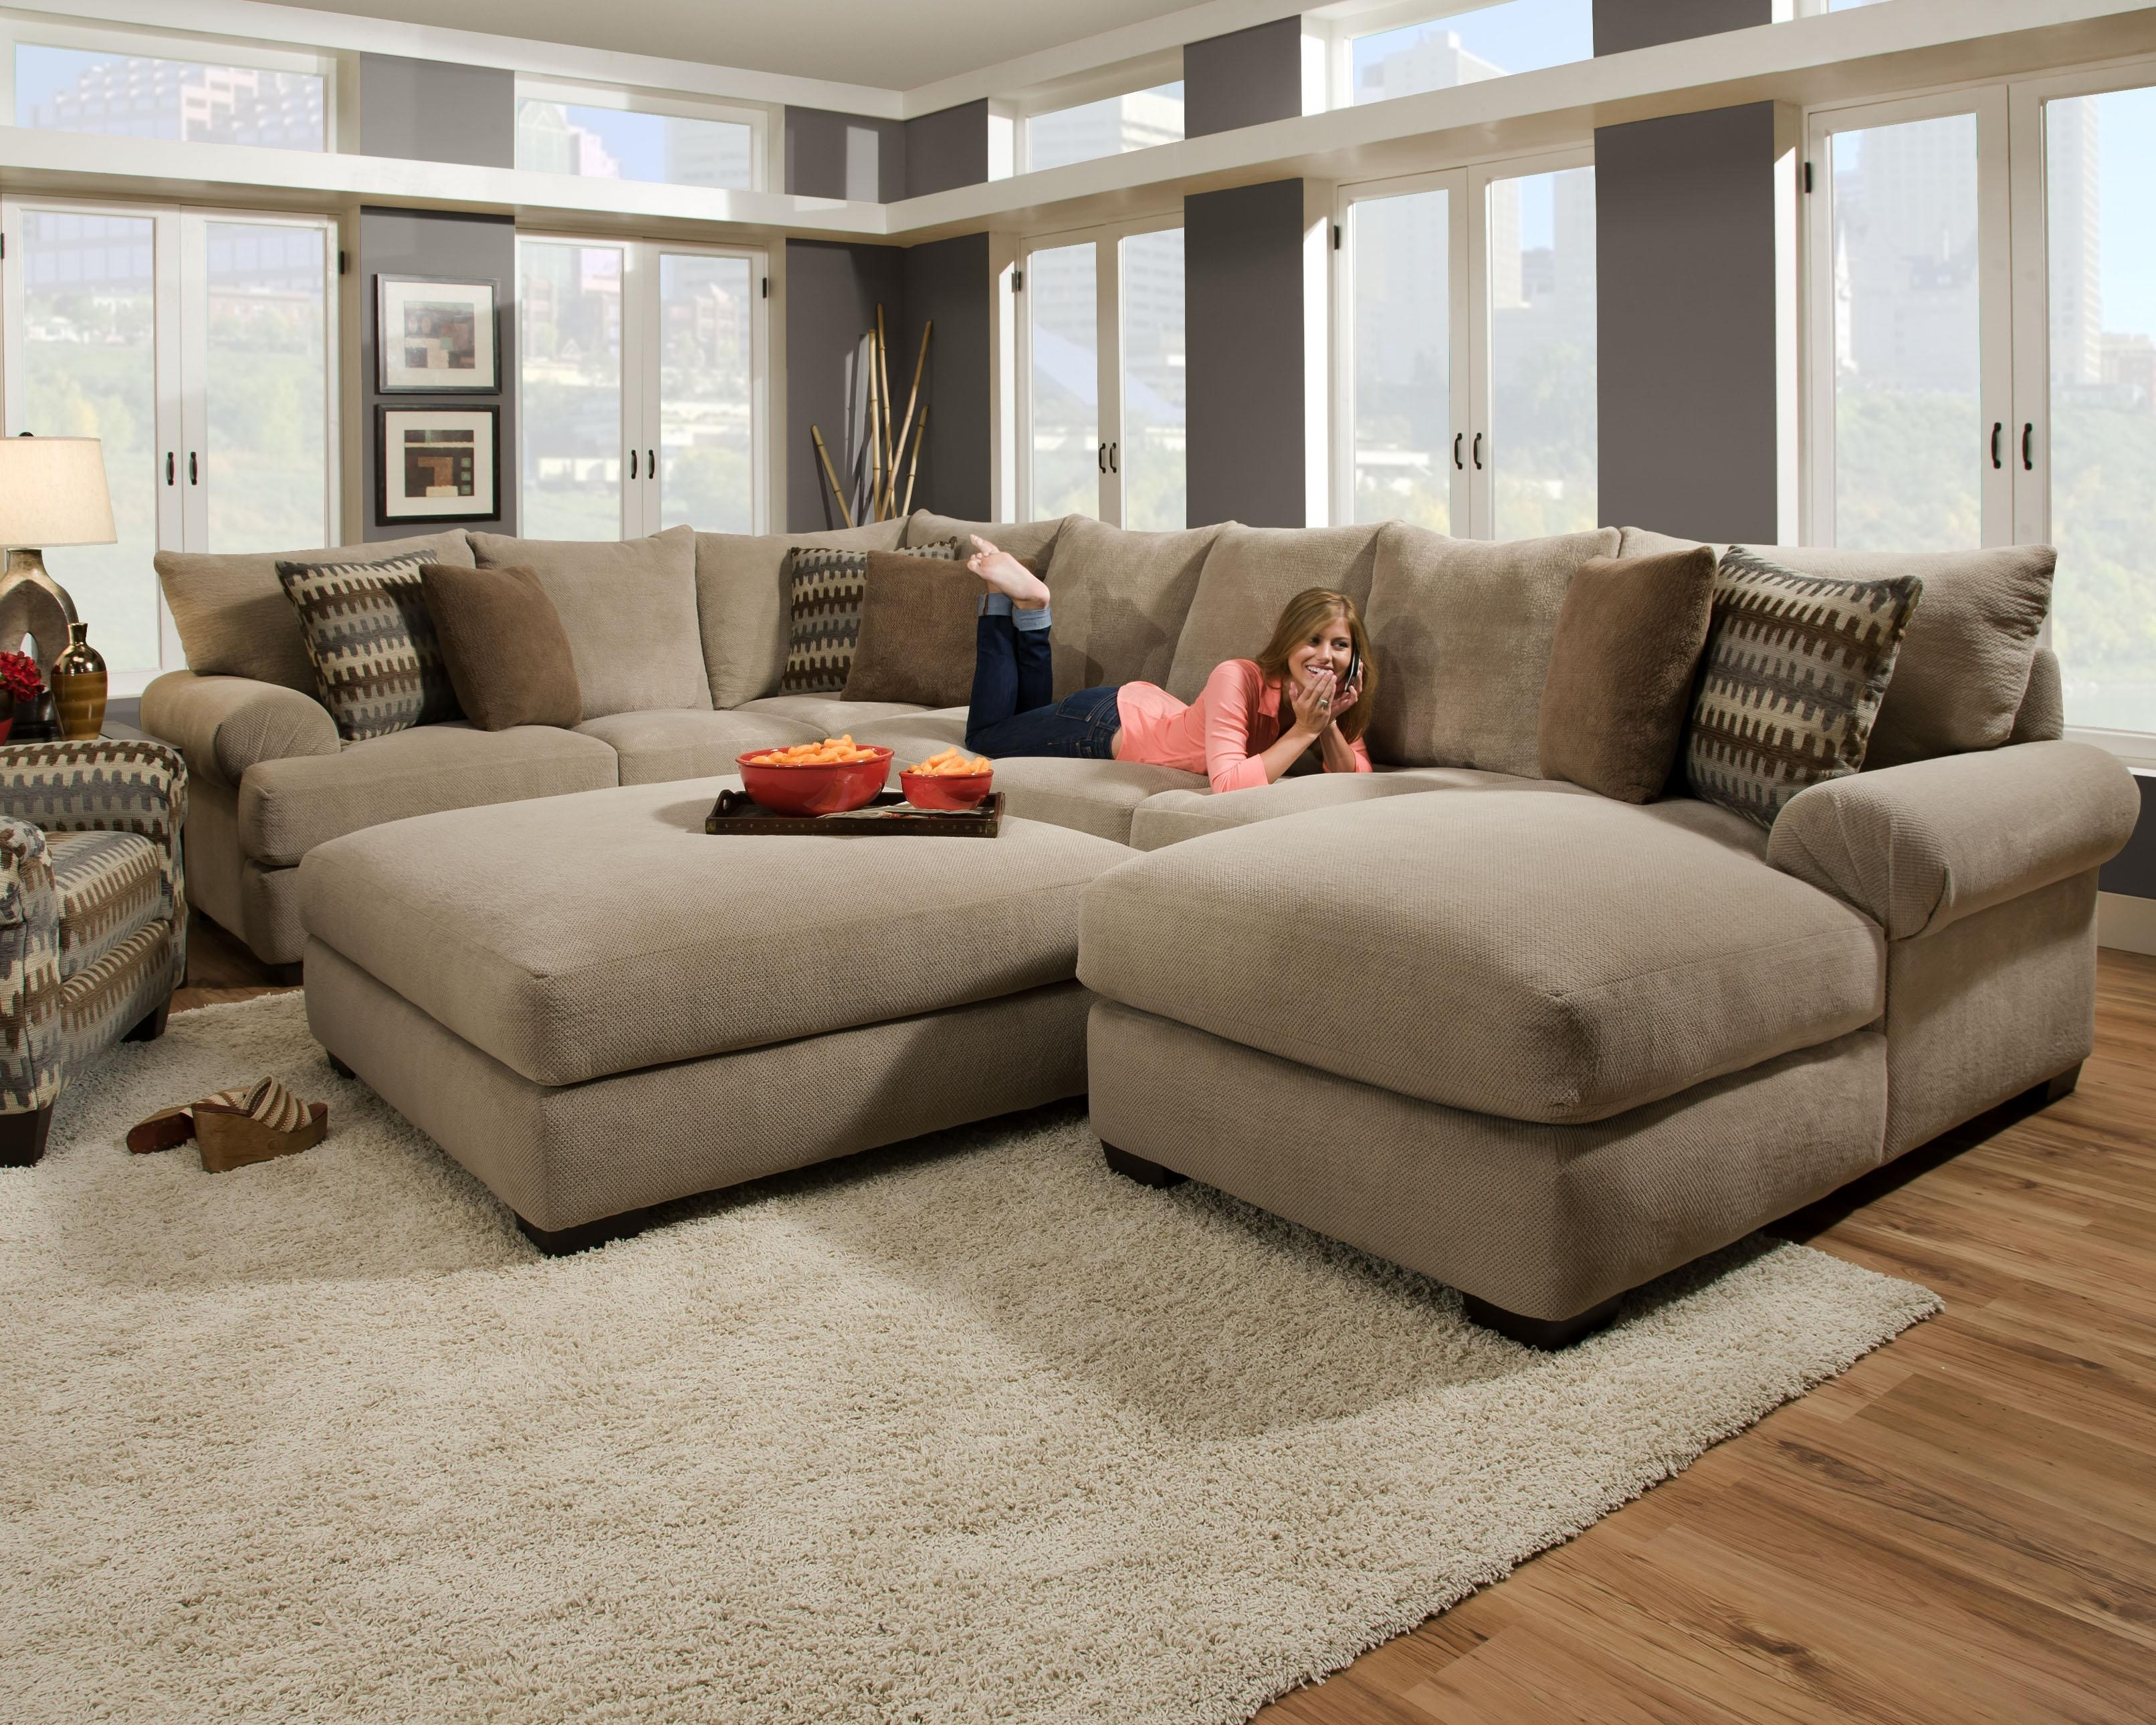 Ontario Canada Sectional Sofas Intended For Preferred Sectional Sofas Under 1000 – Home Design Ideas And Pictures (View 9 of 15)